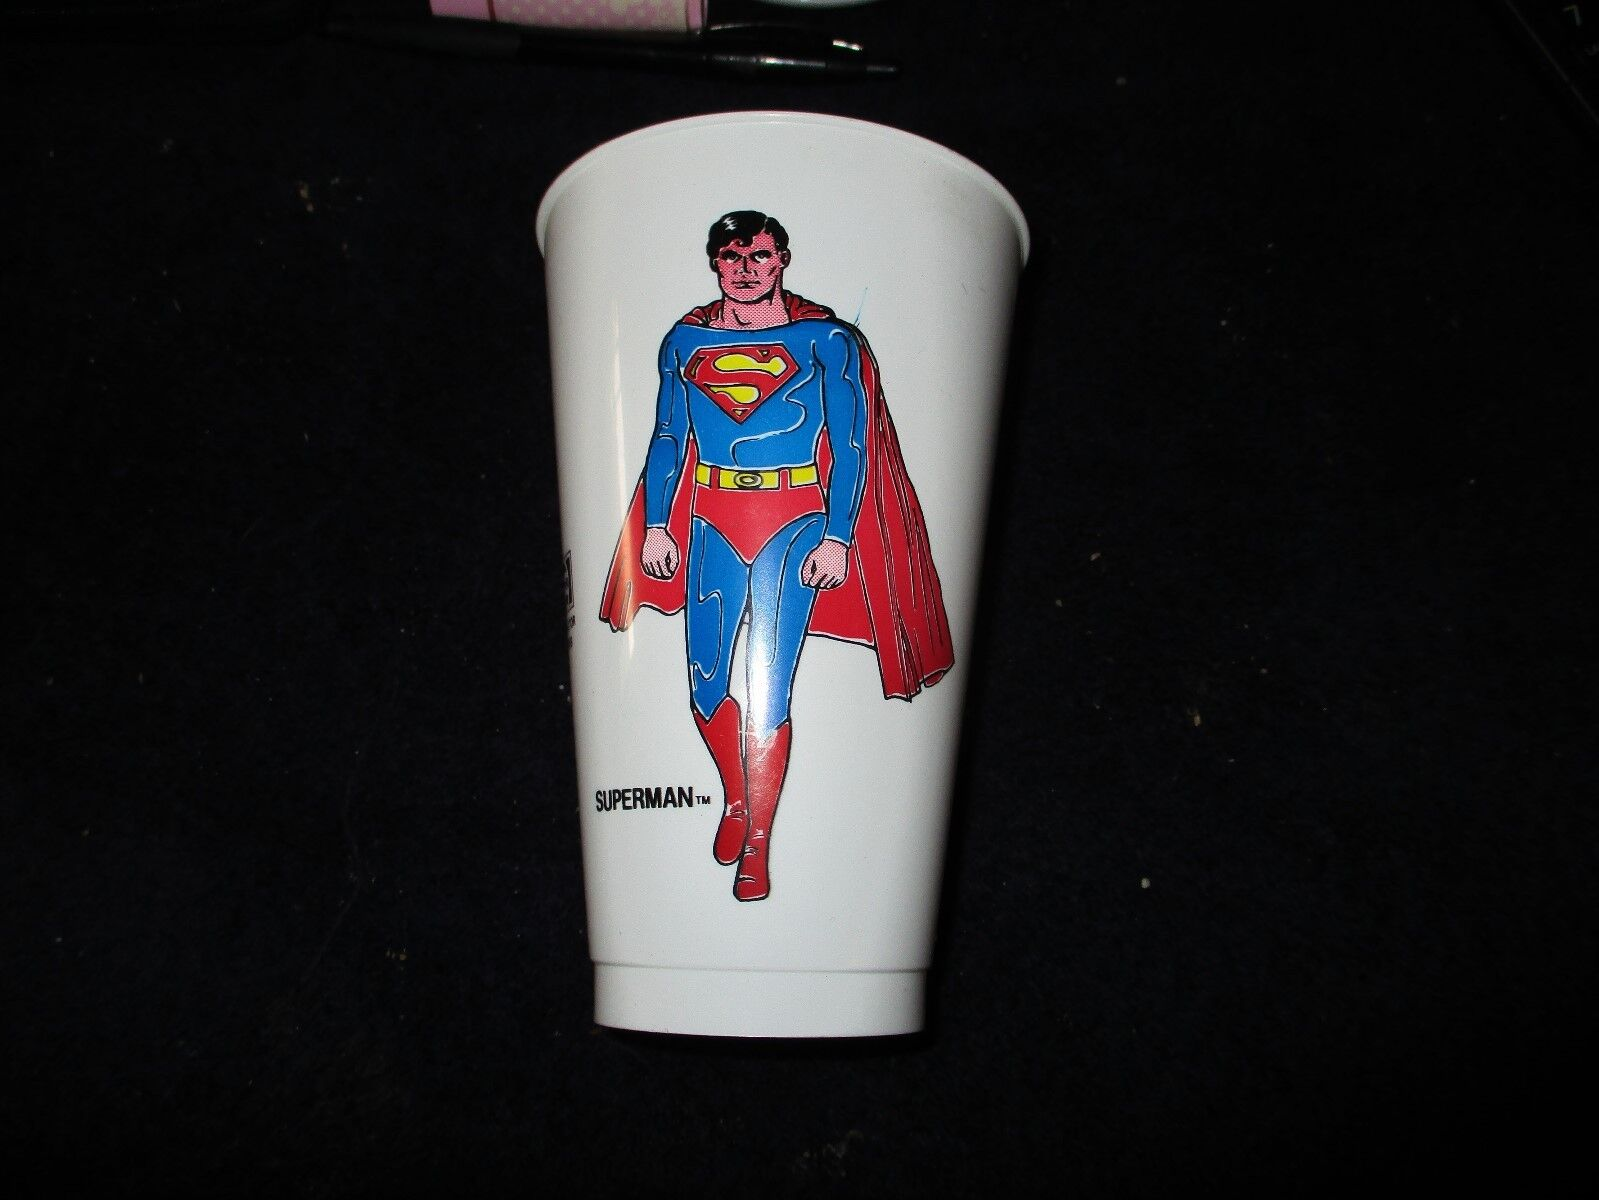 1978 SUPERMAN THE MOVIE PEPSI COLLECTOR S SERIES CUP CHRISTOPHER REEVE RARE  - $9.99